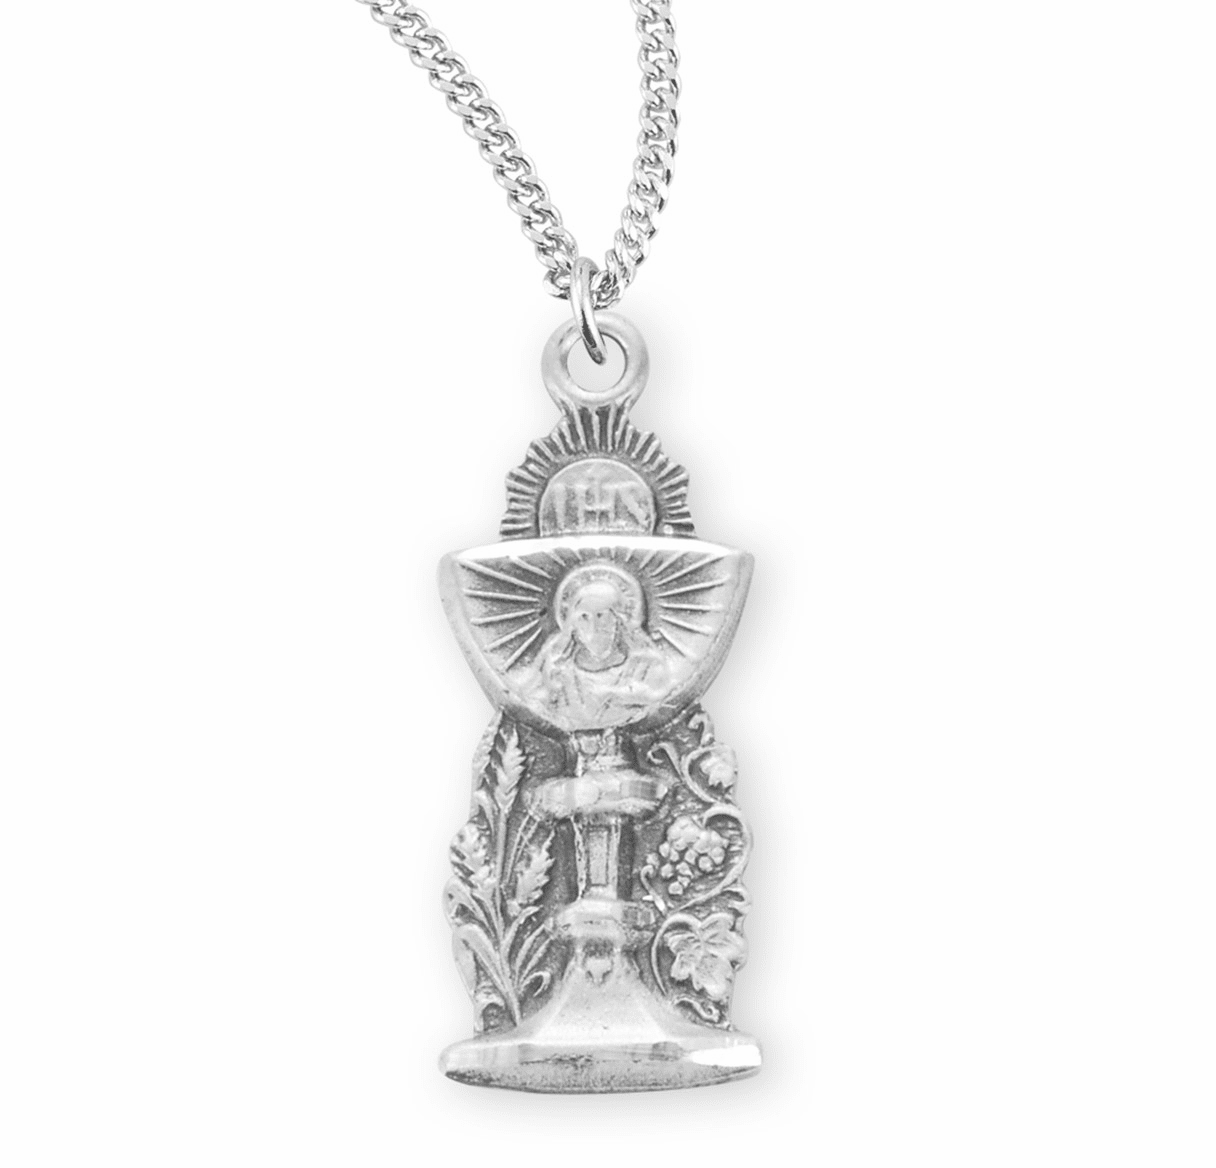 HMH Religious Sterling Silver Chalice 1st Communion Chalice Medal Necklace